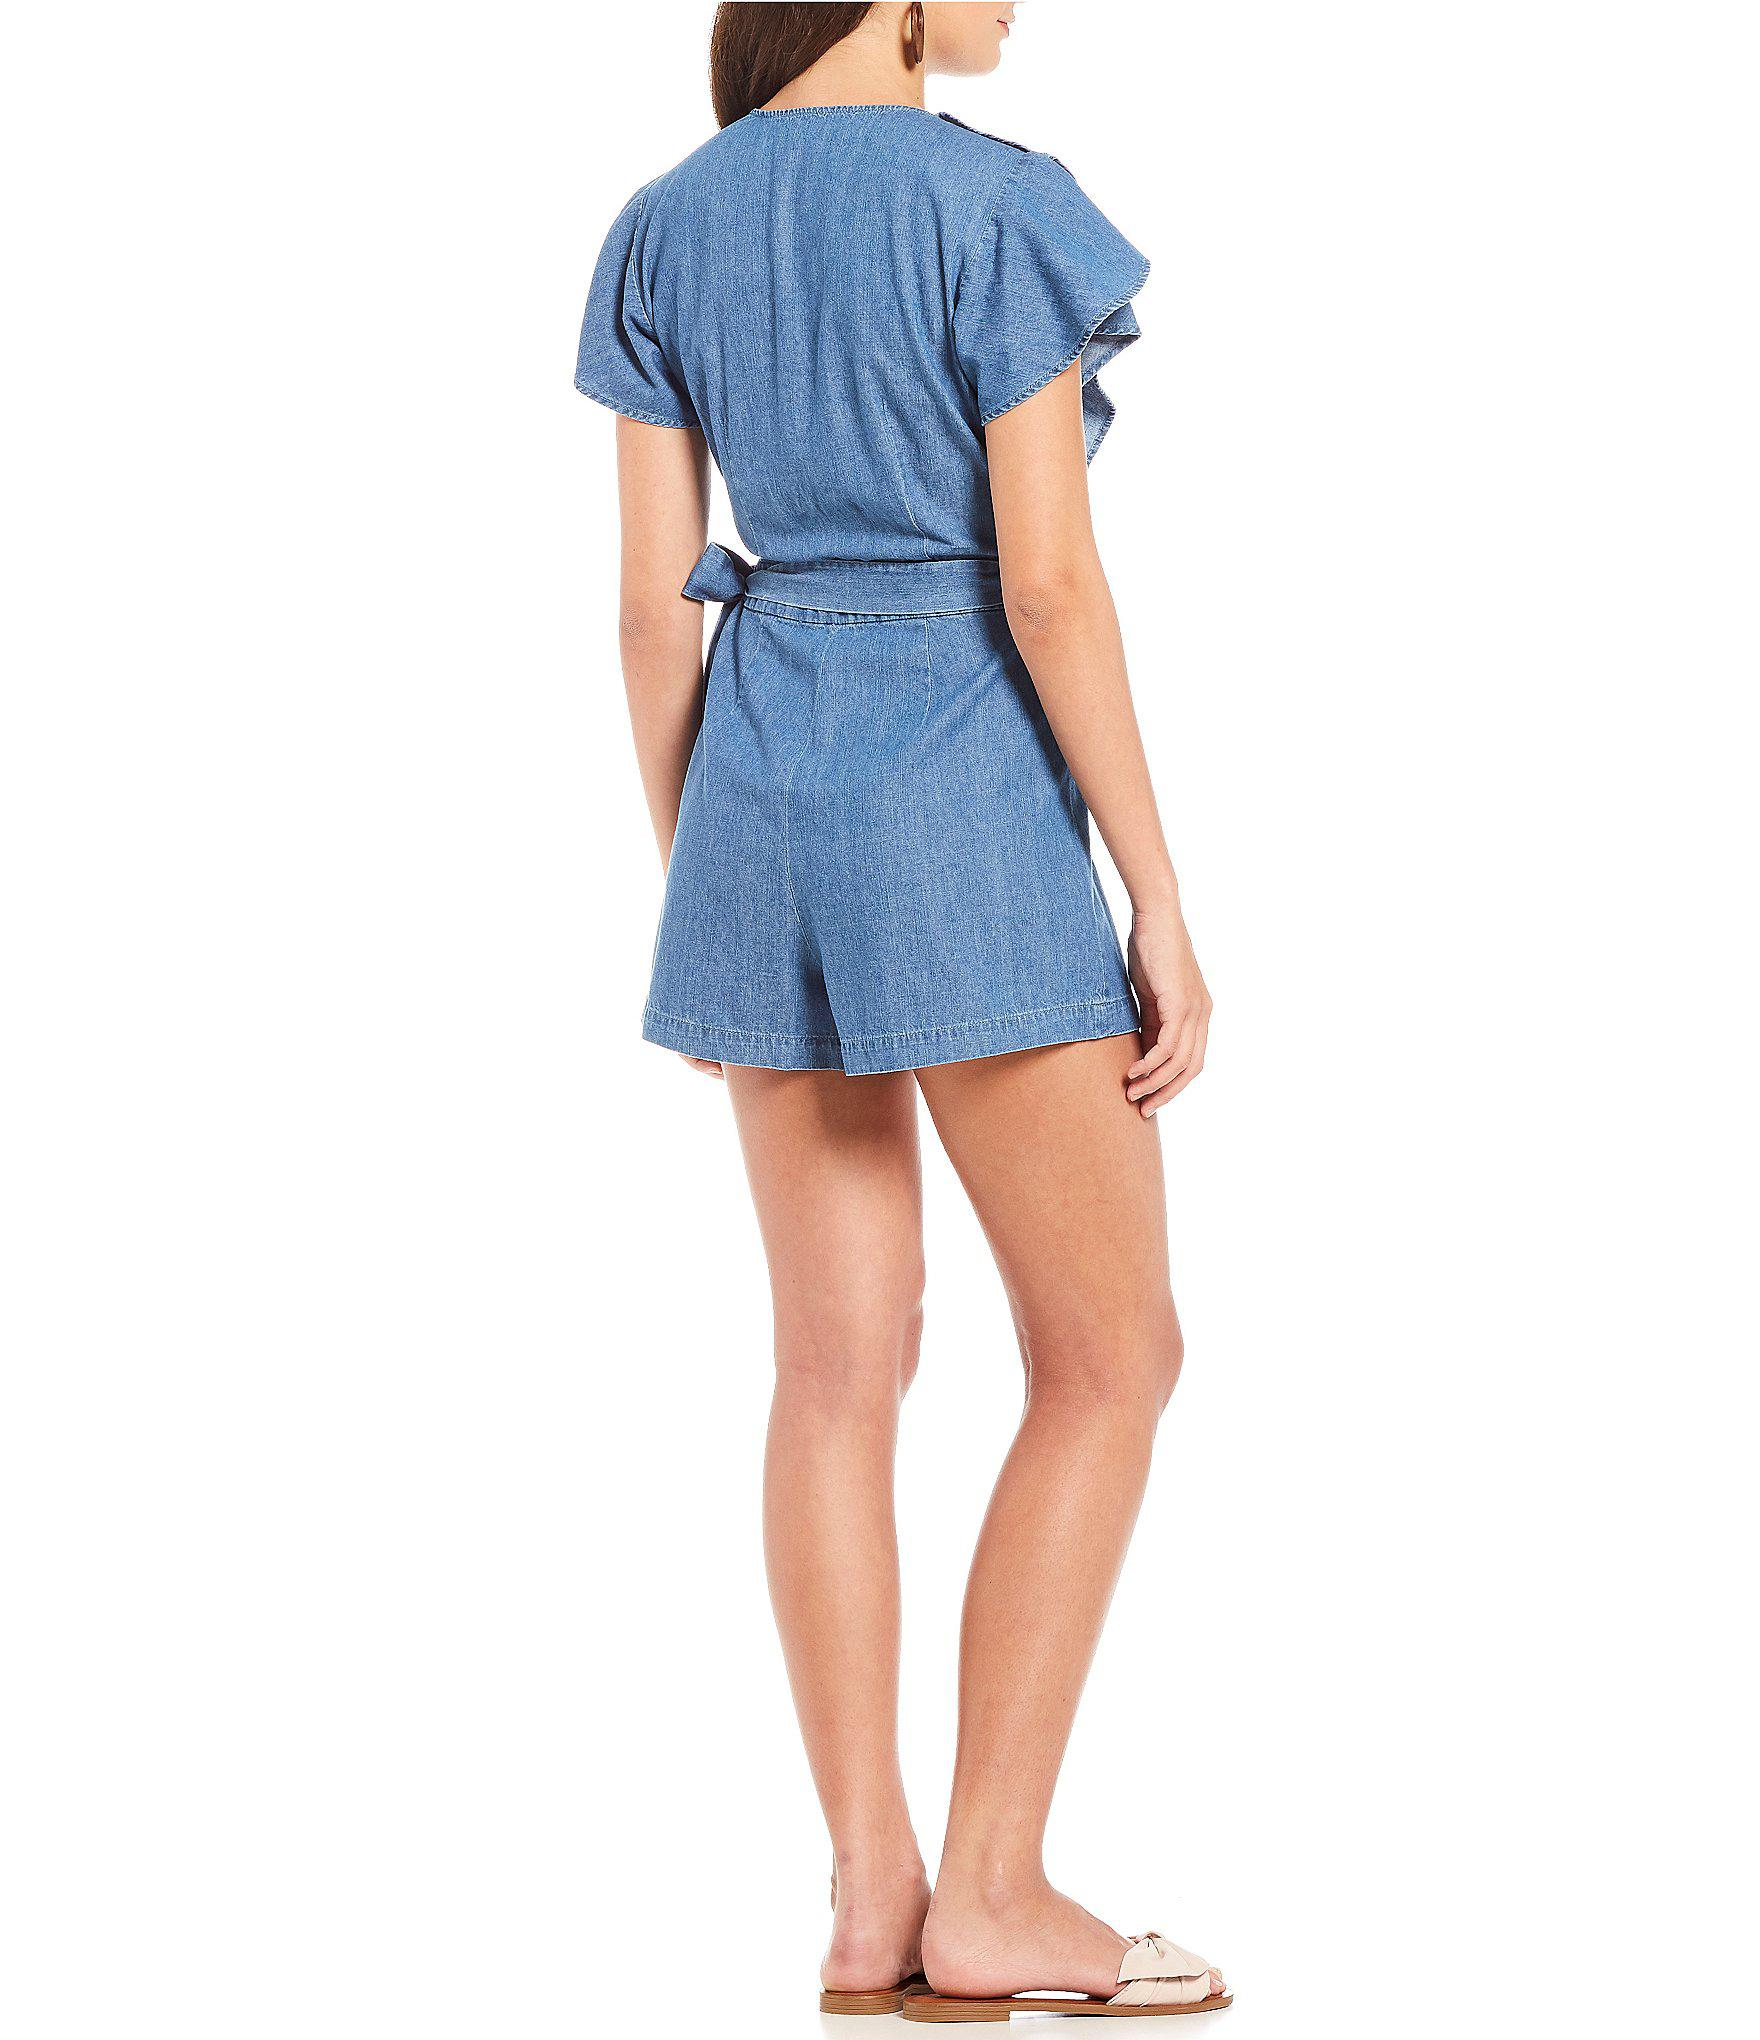 30c3663f903 Lyst - Draper James Chambray Flutter Ruffle Romper in Blue